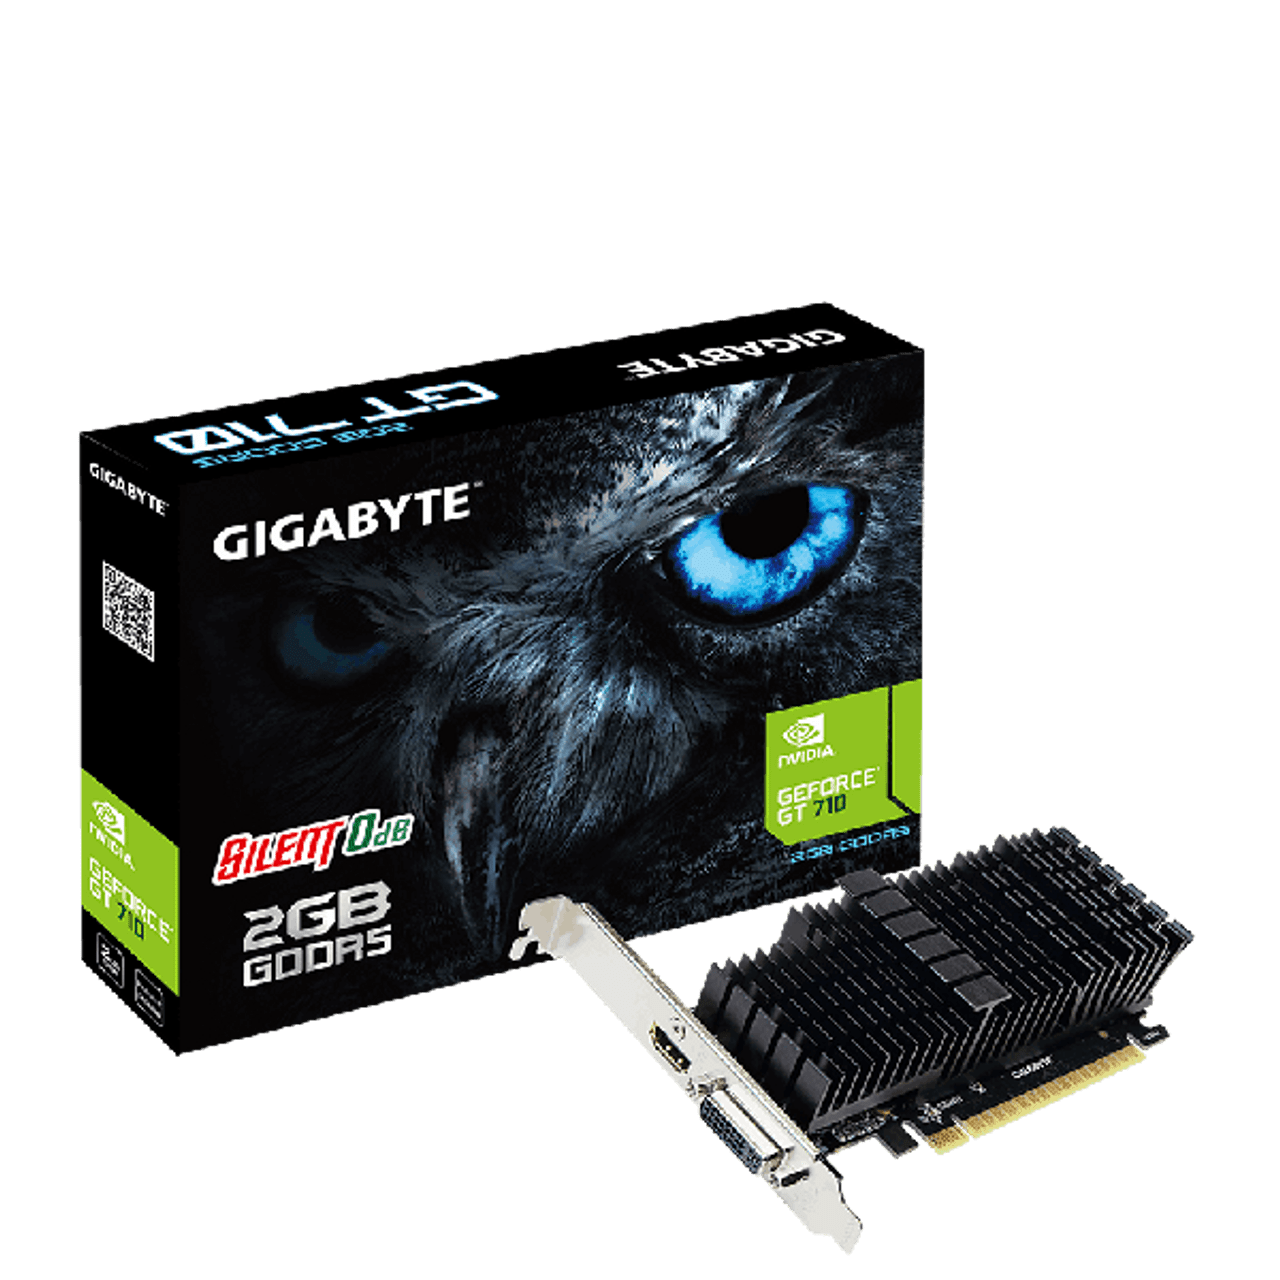 Product image for Gigabyte GeForce GT 710 Passive 2GB | CX Computer Superstore